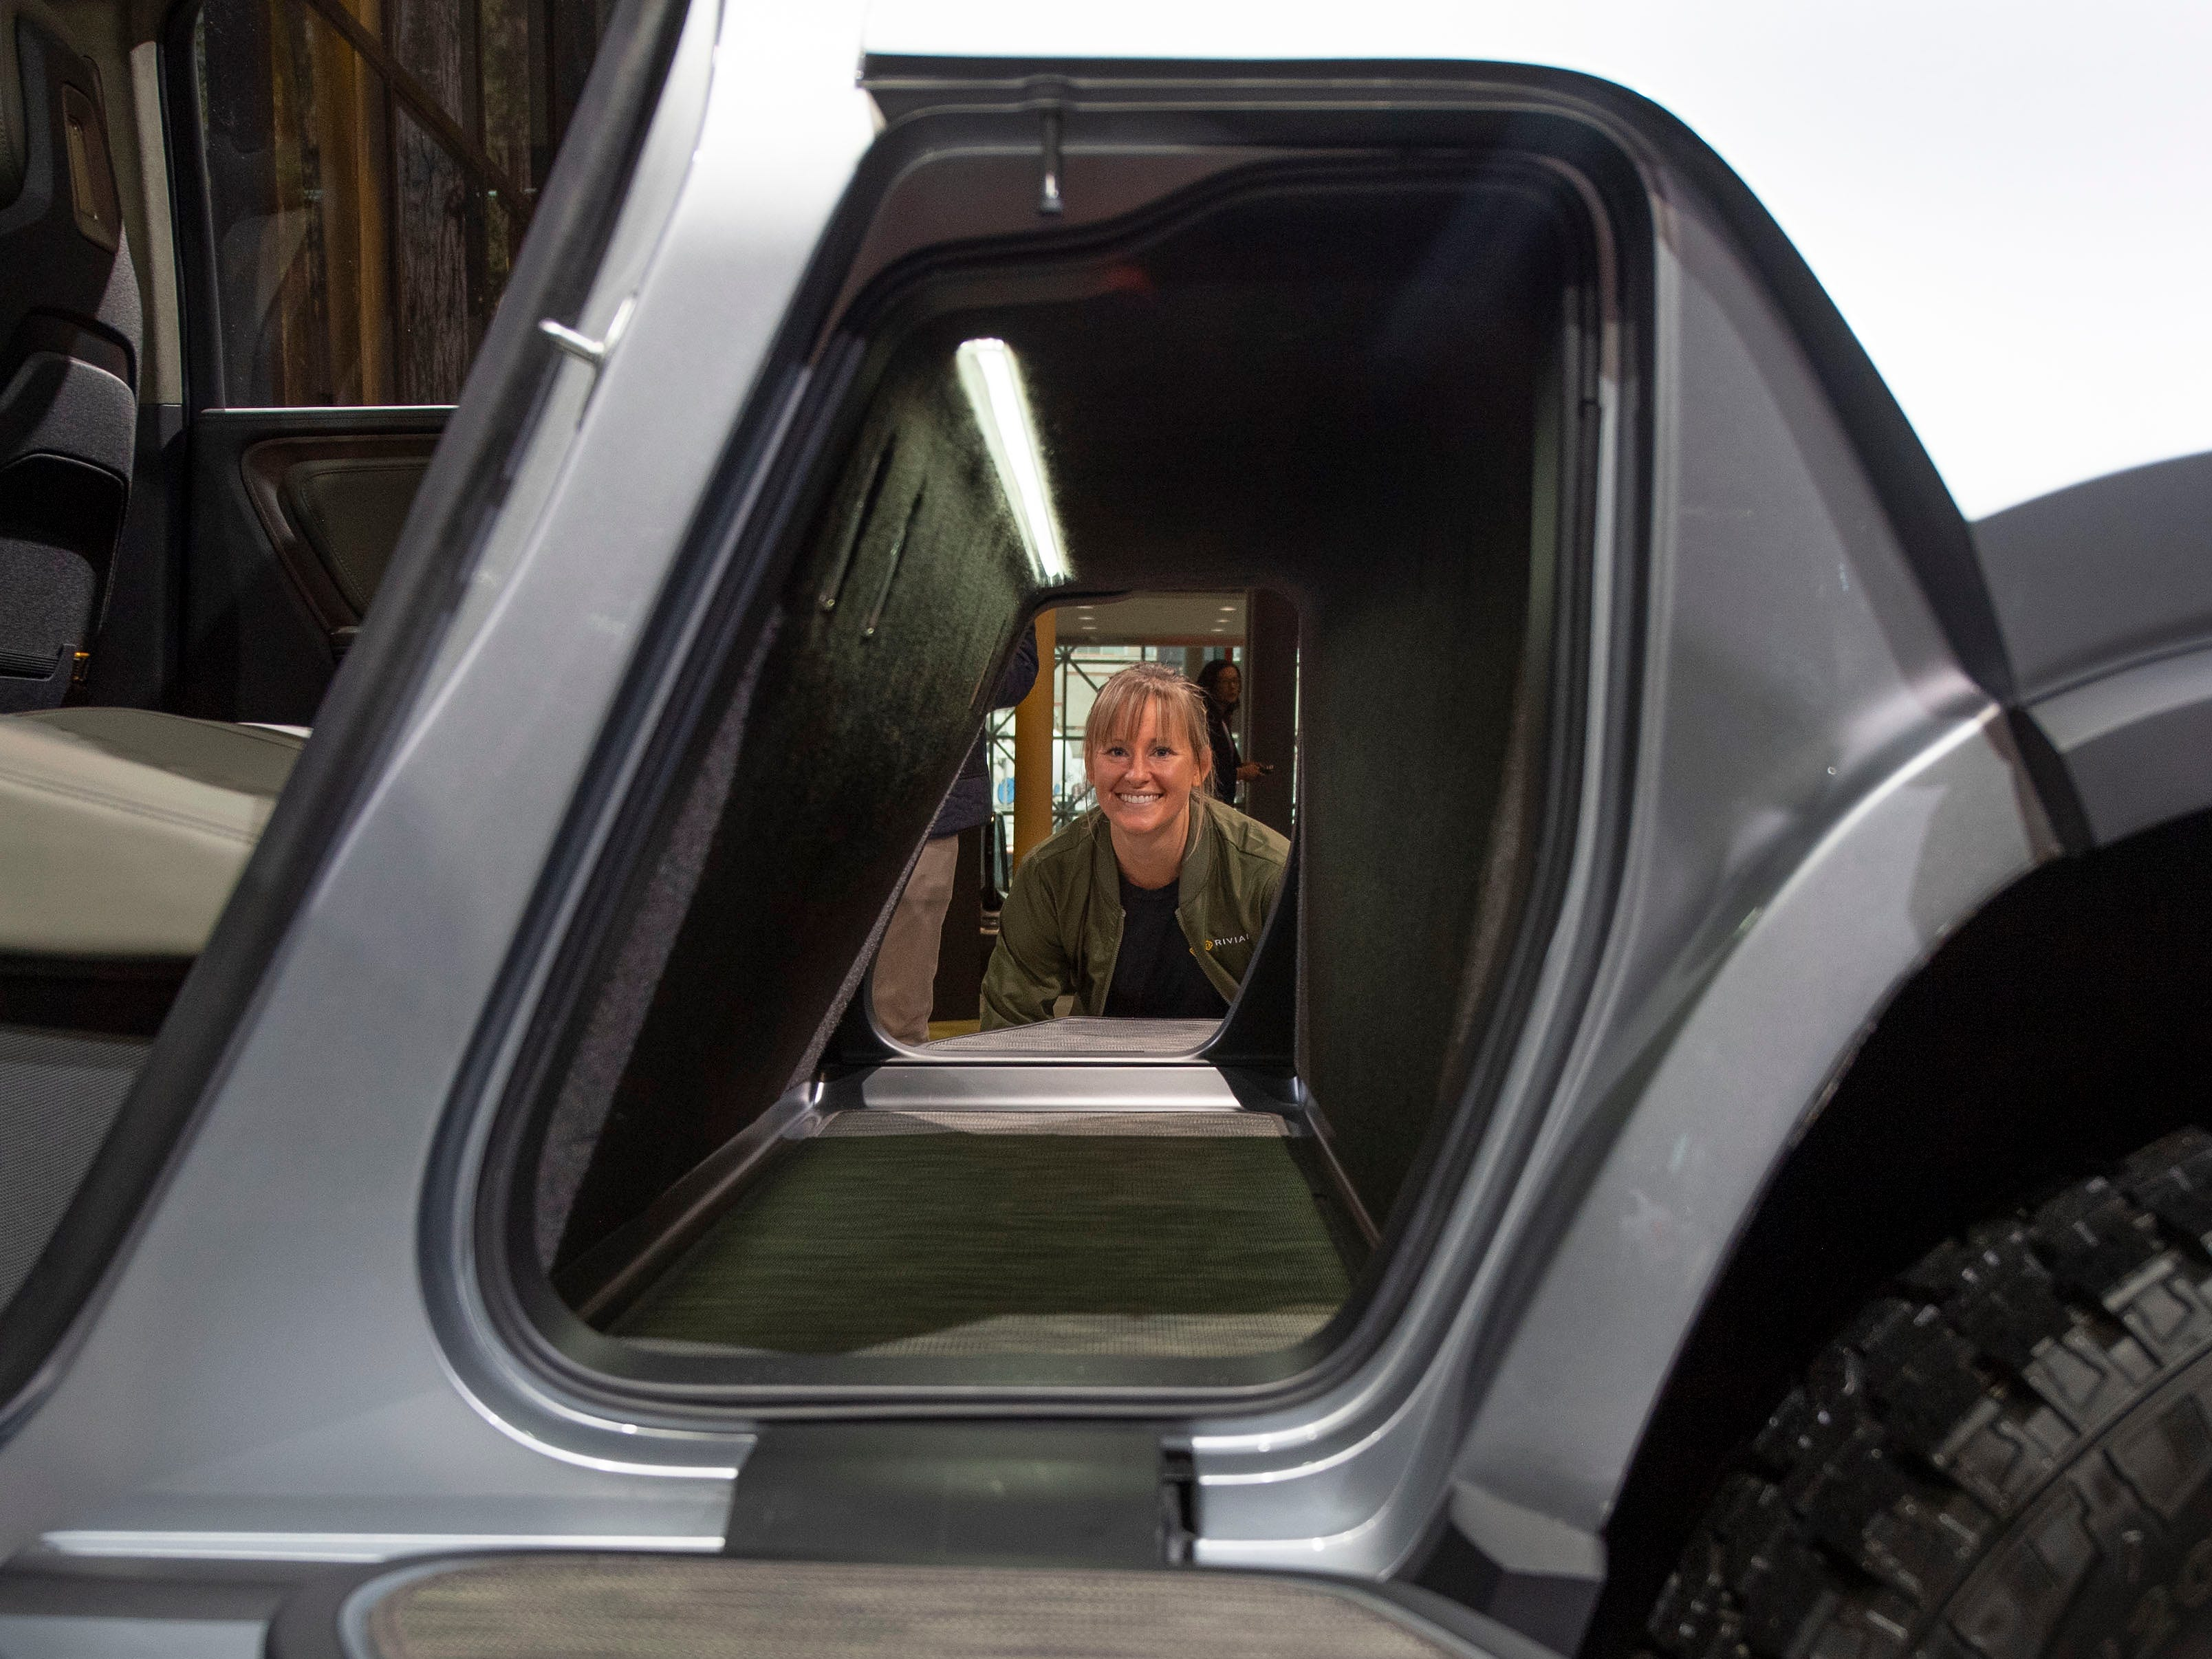 The Rivian RT1 electric truck has storage, known as a gear tunnel, where a drive train used to be.